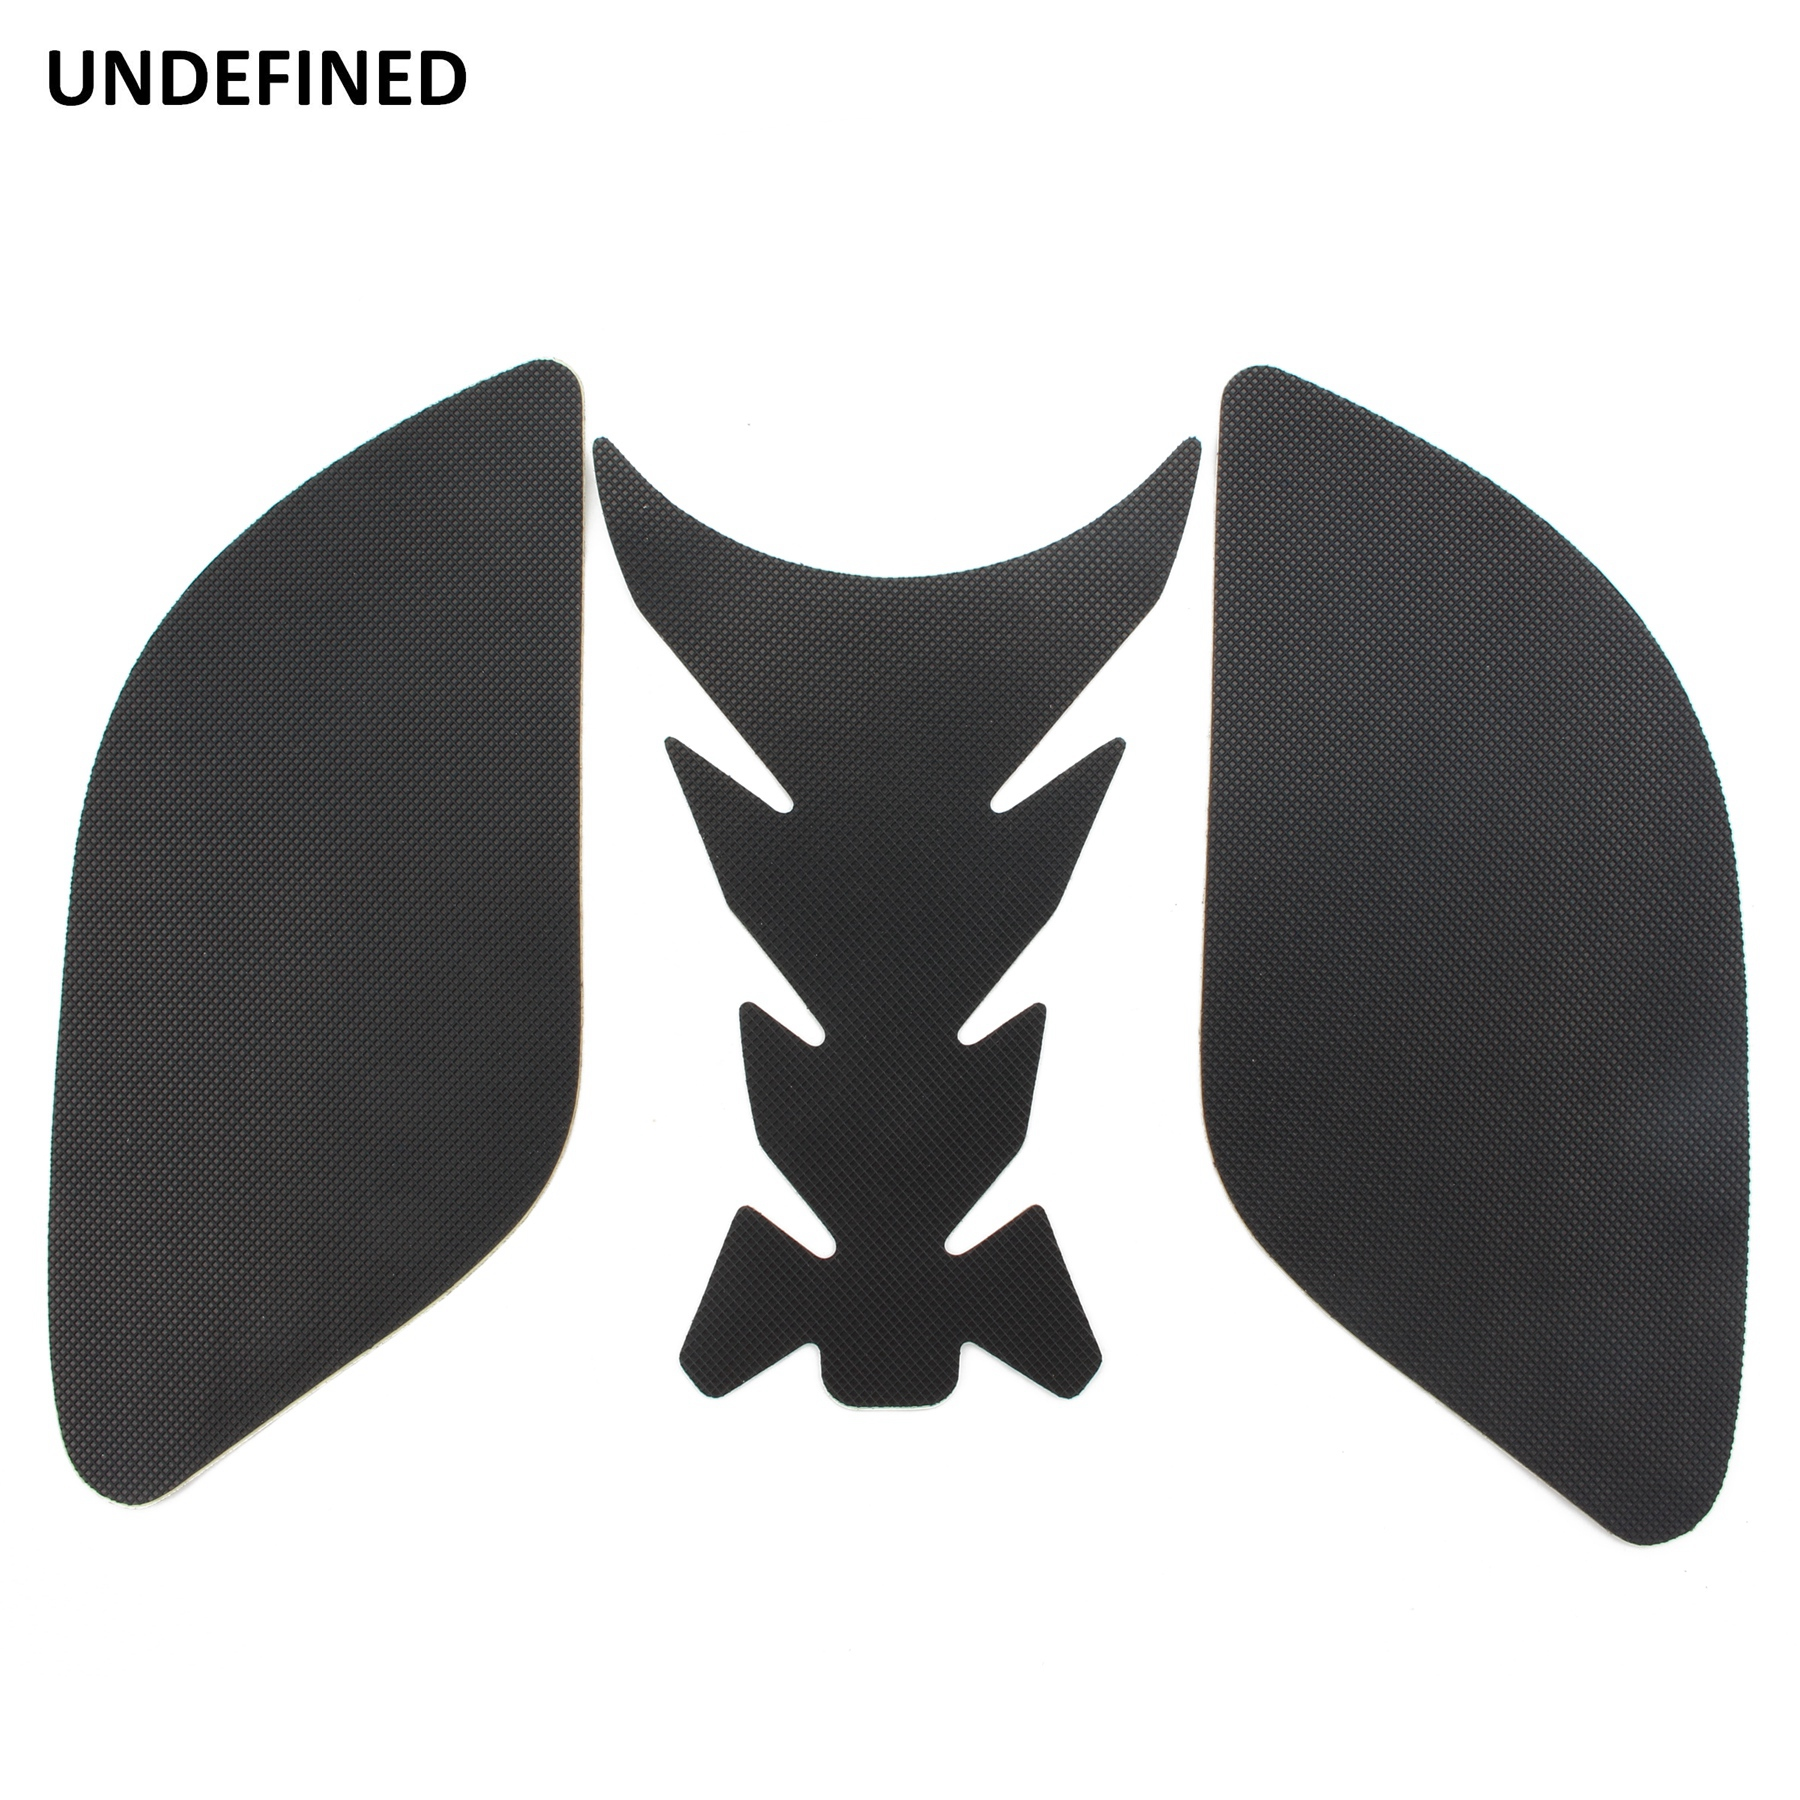 White Eagle Motorcycle Fuel Tank Decal Pad Protector Cover Sticker